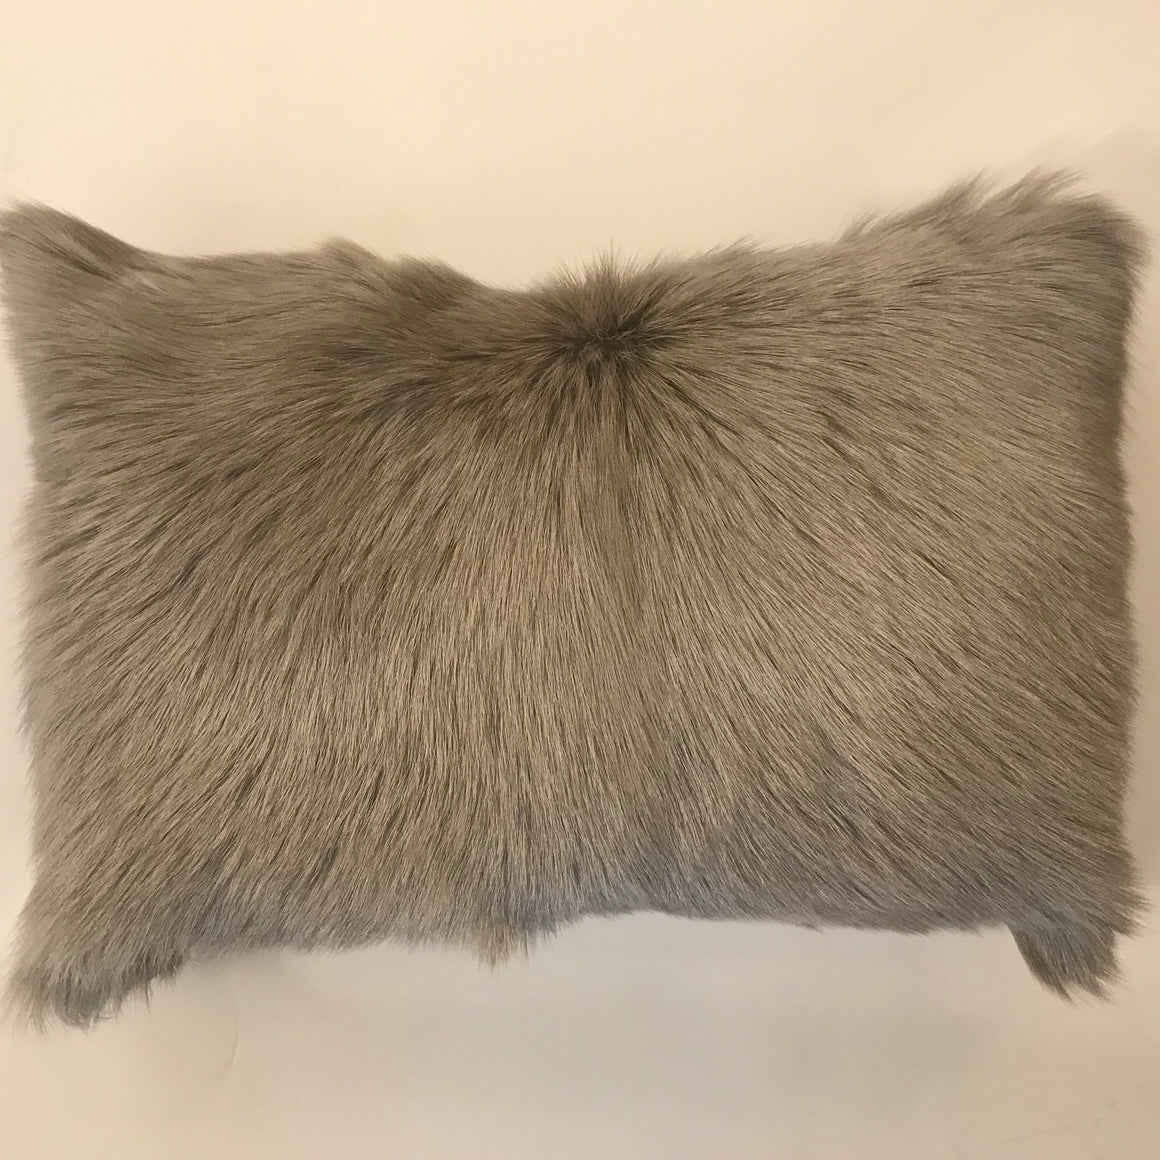 Billy Ombre Lumbar Pillow -13x20